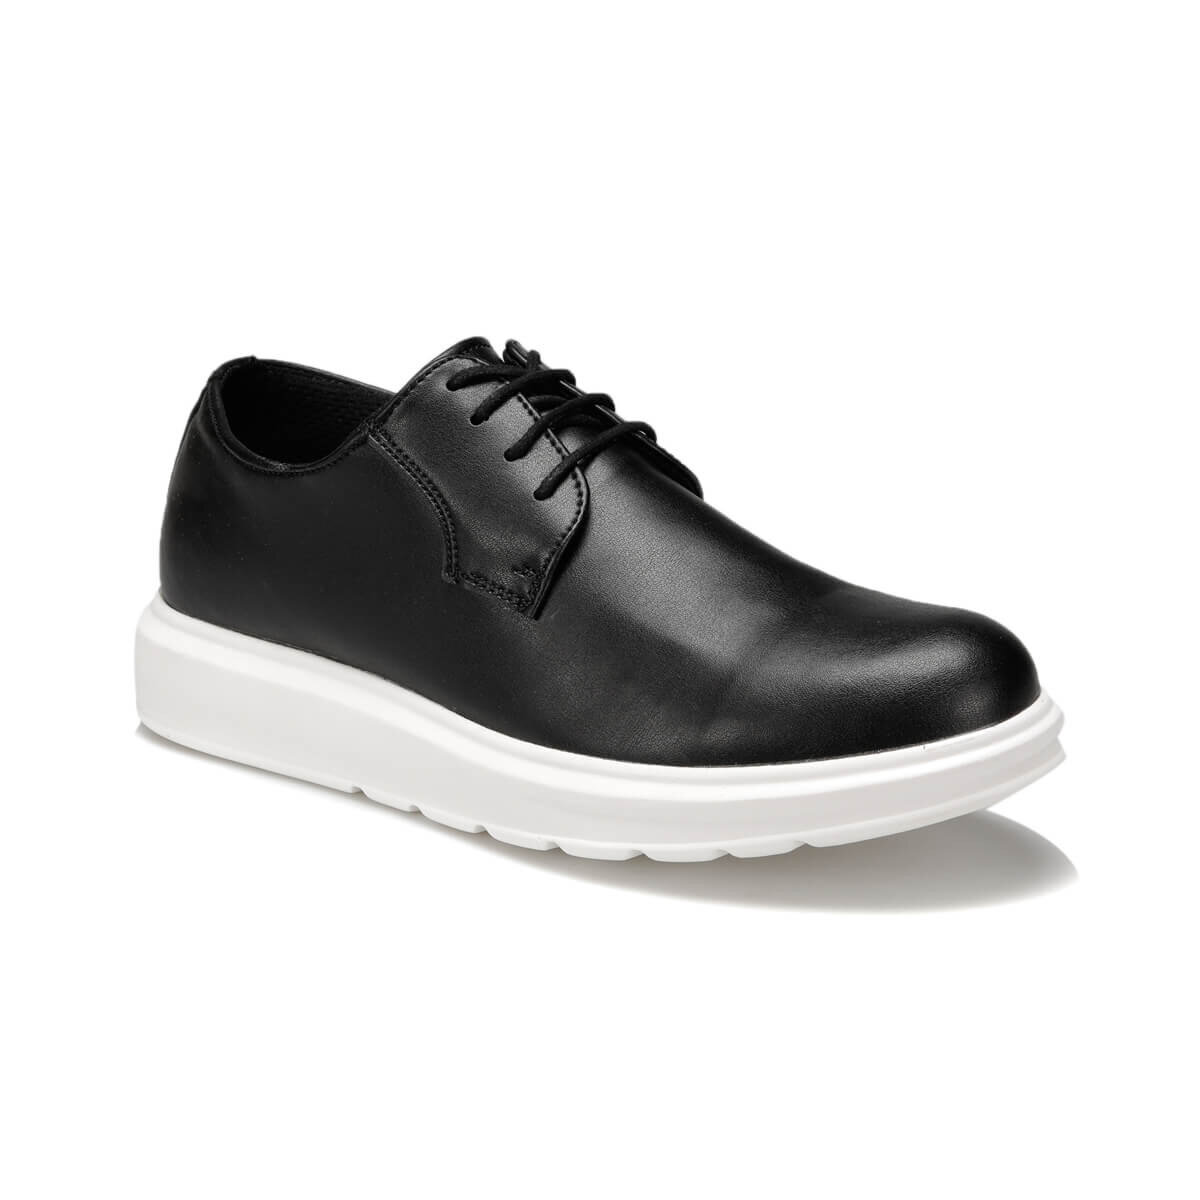 FLO ZY-1 Black Male Shoes Forester